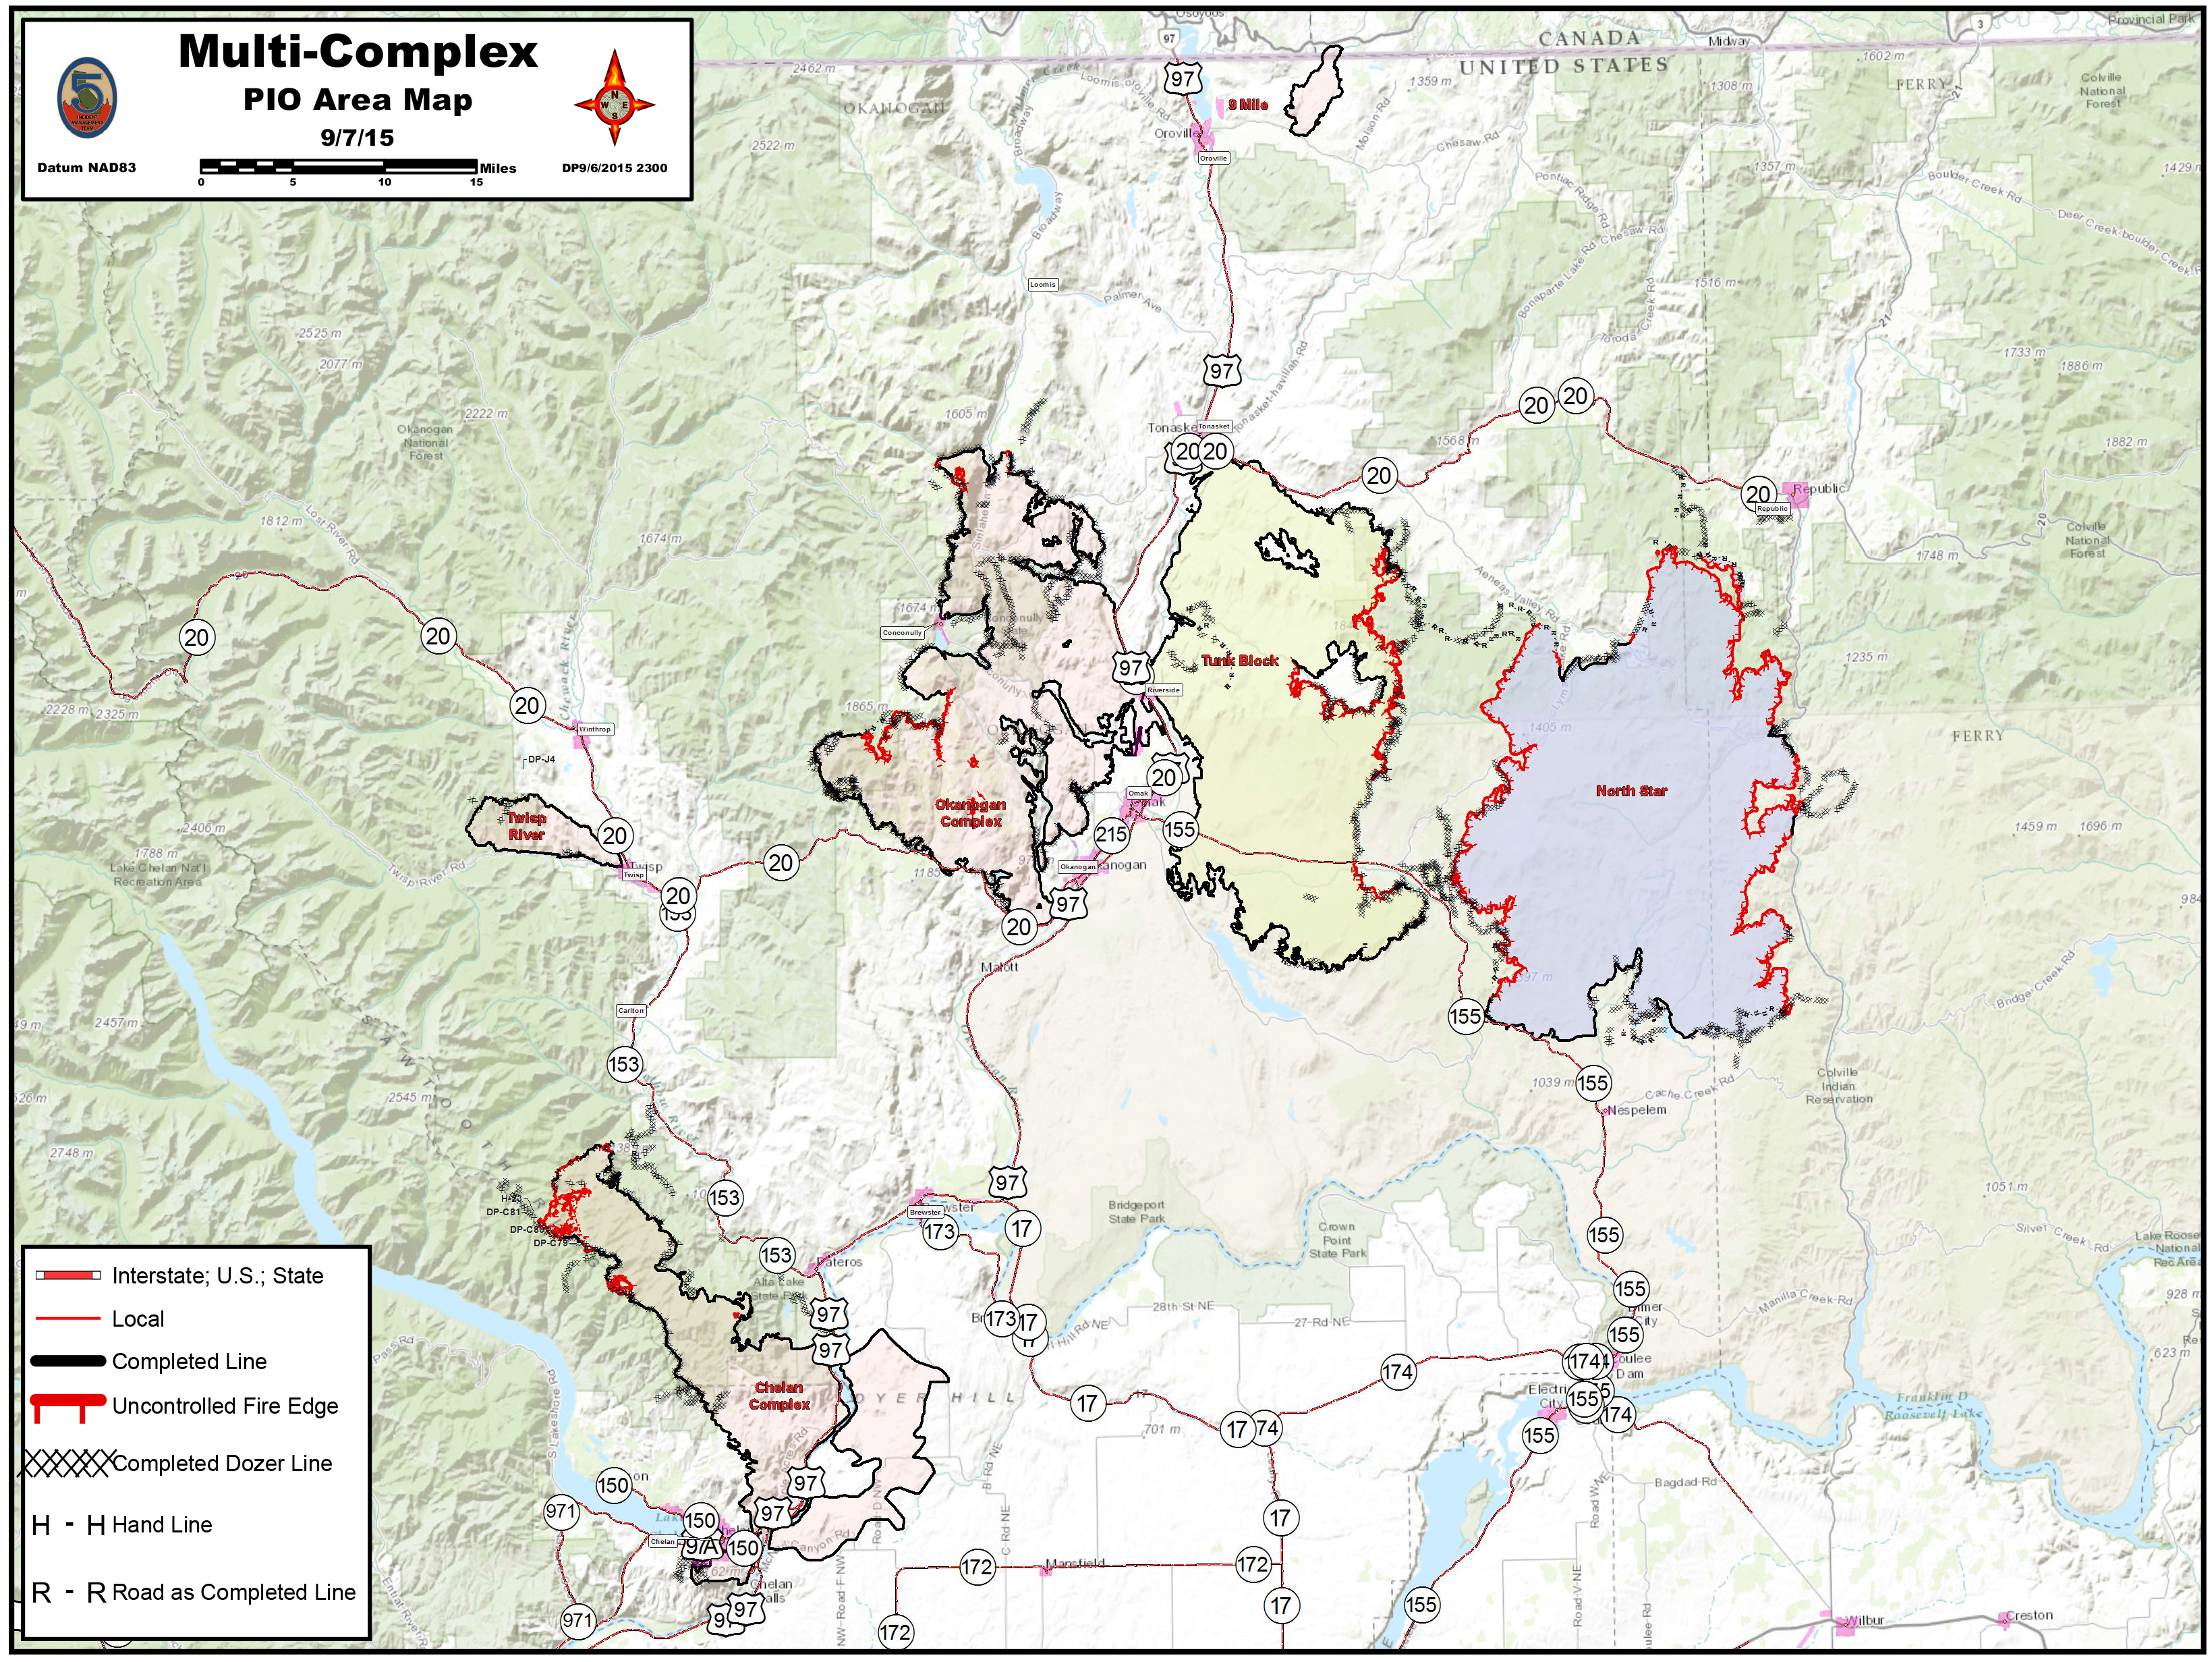 Fire Map PIO_MultiComplex_ARCH_A_Land_20150907_0734_OkanoganComplex_WANES001203